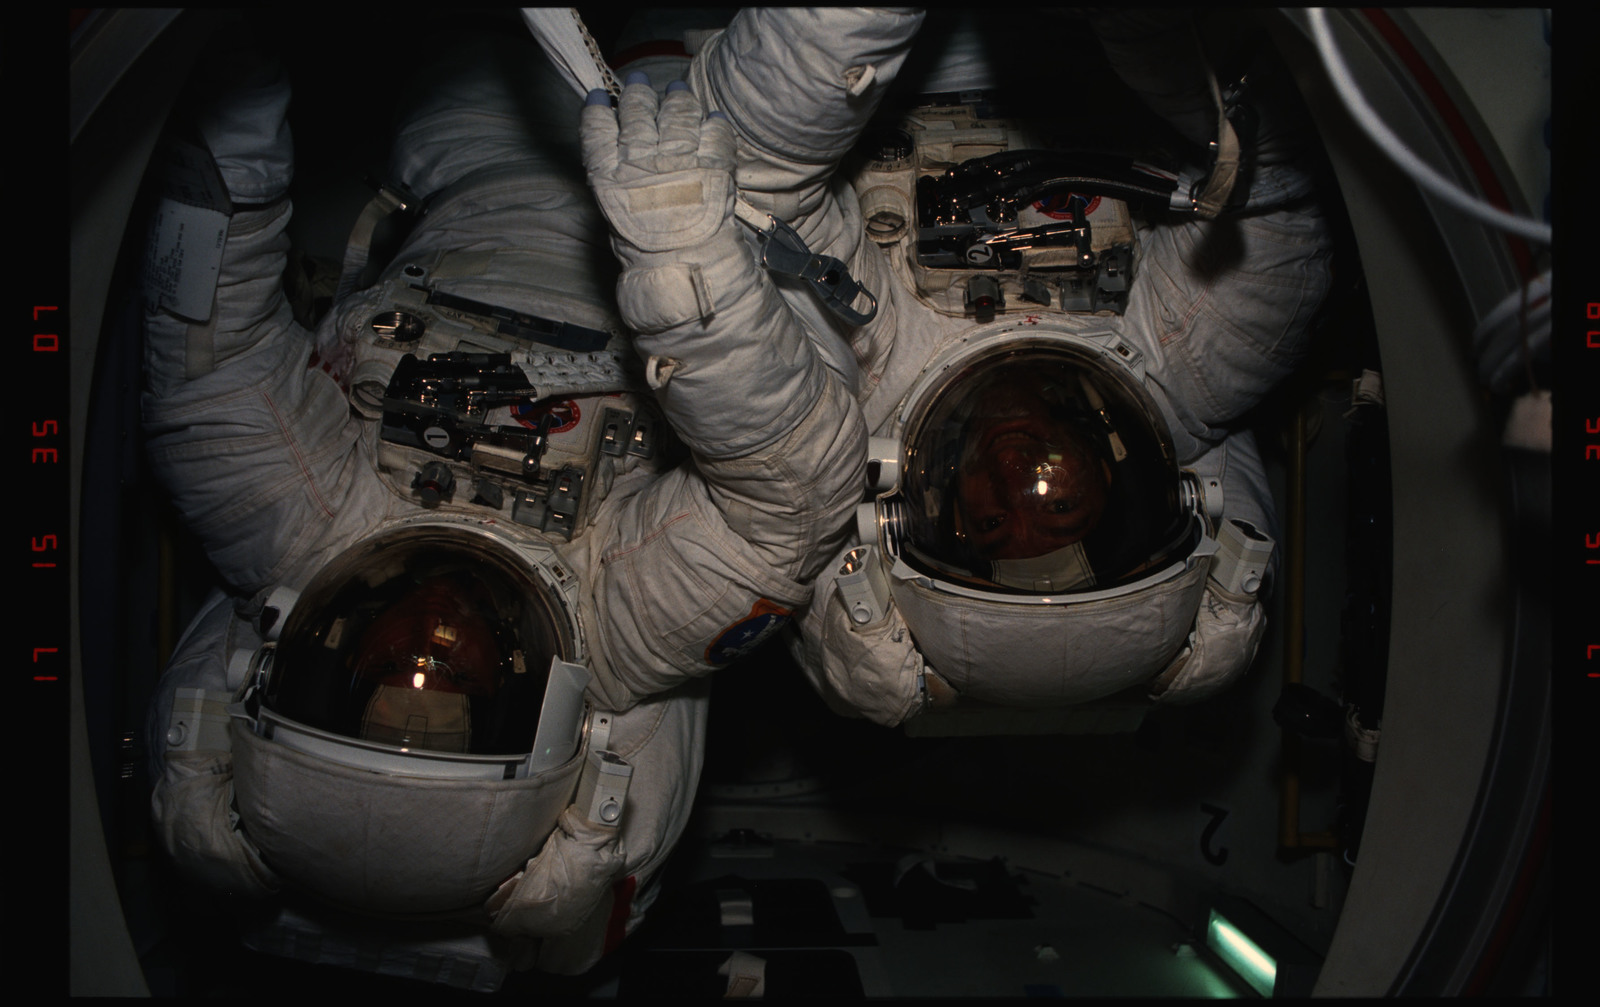 STS054-06-015 - STS-054 - EVA Crewmembers emerging from the air lock into the middeck.